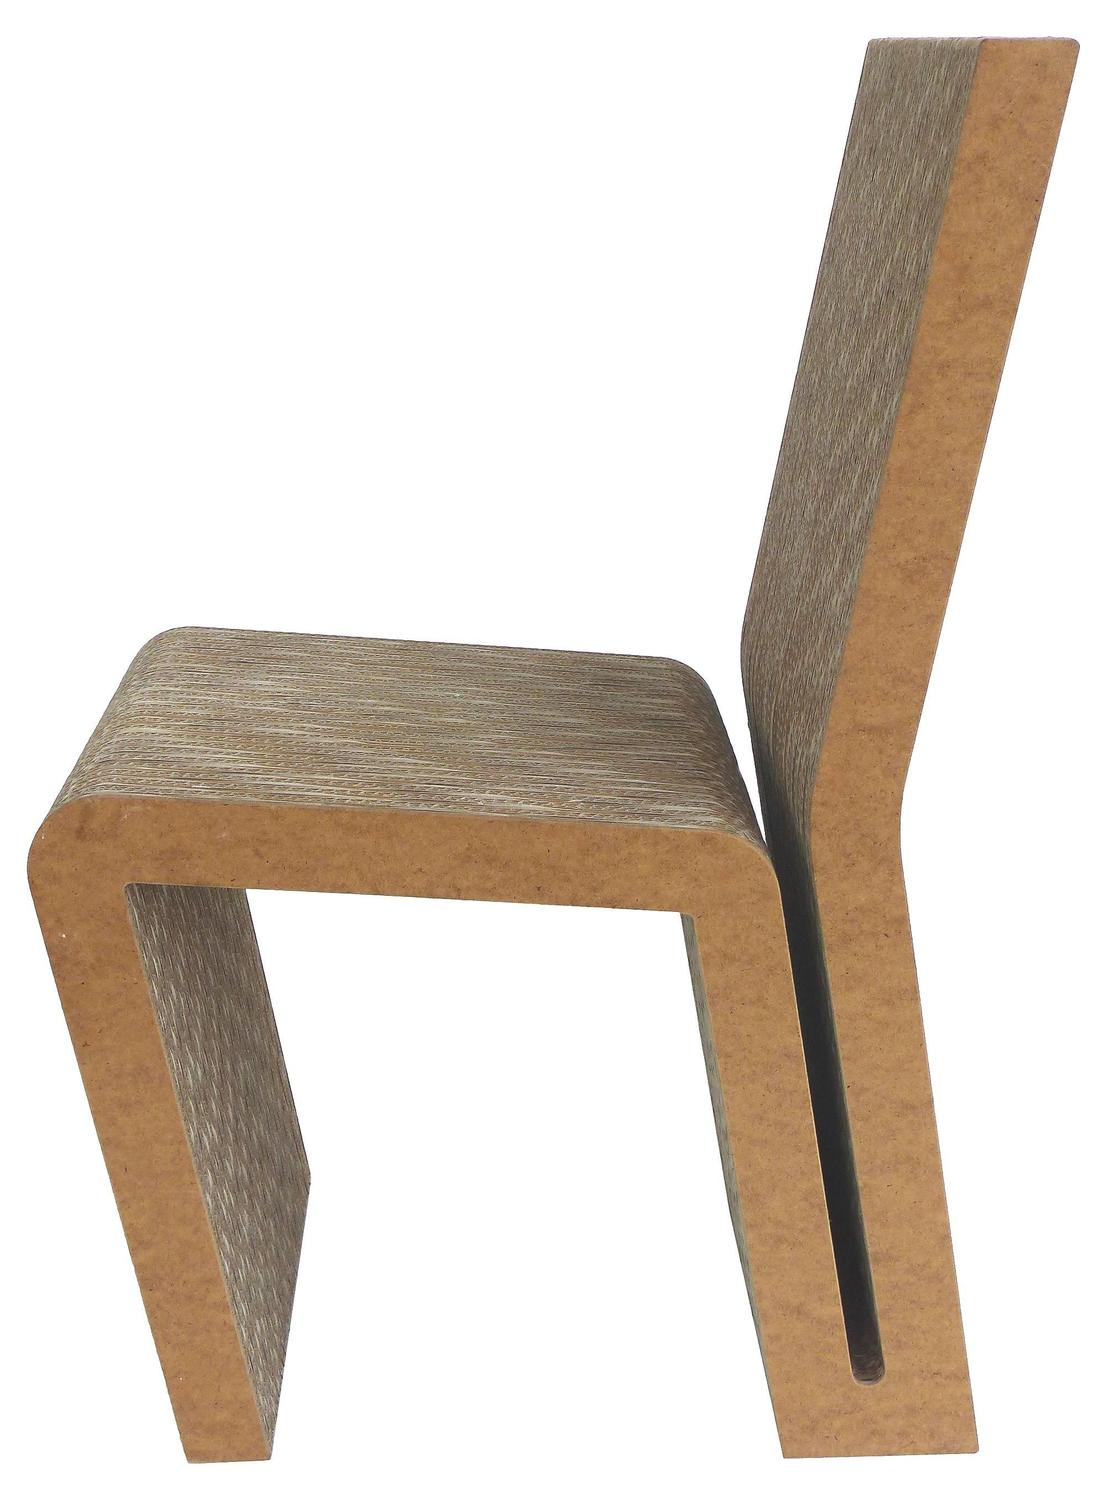 frank gehry cardboard chair covers giant tiger side chairs for sale at 1stdibs